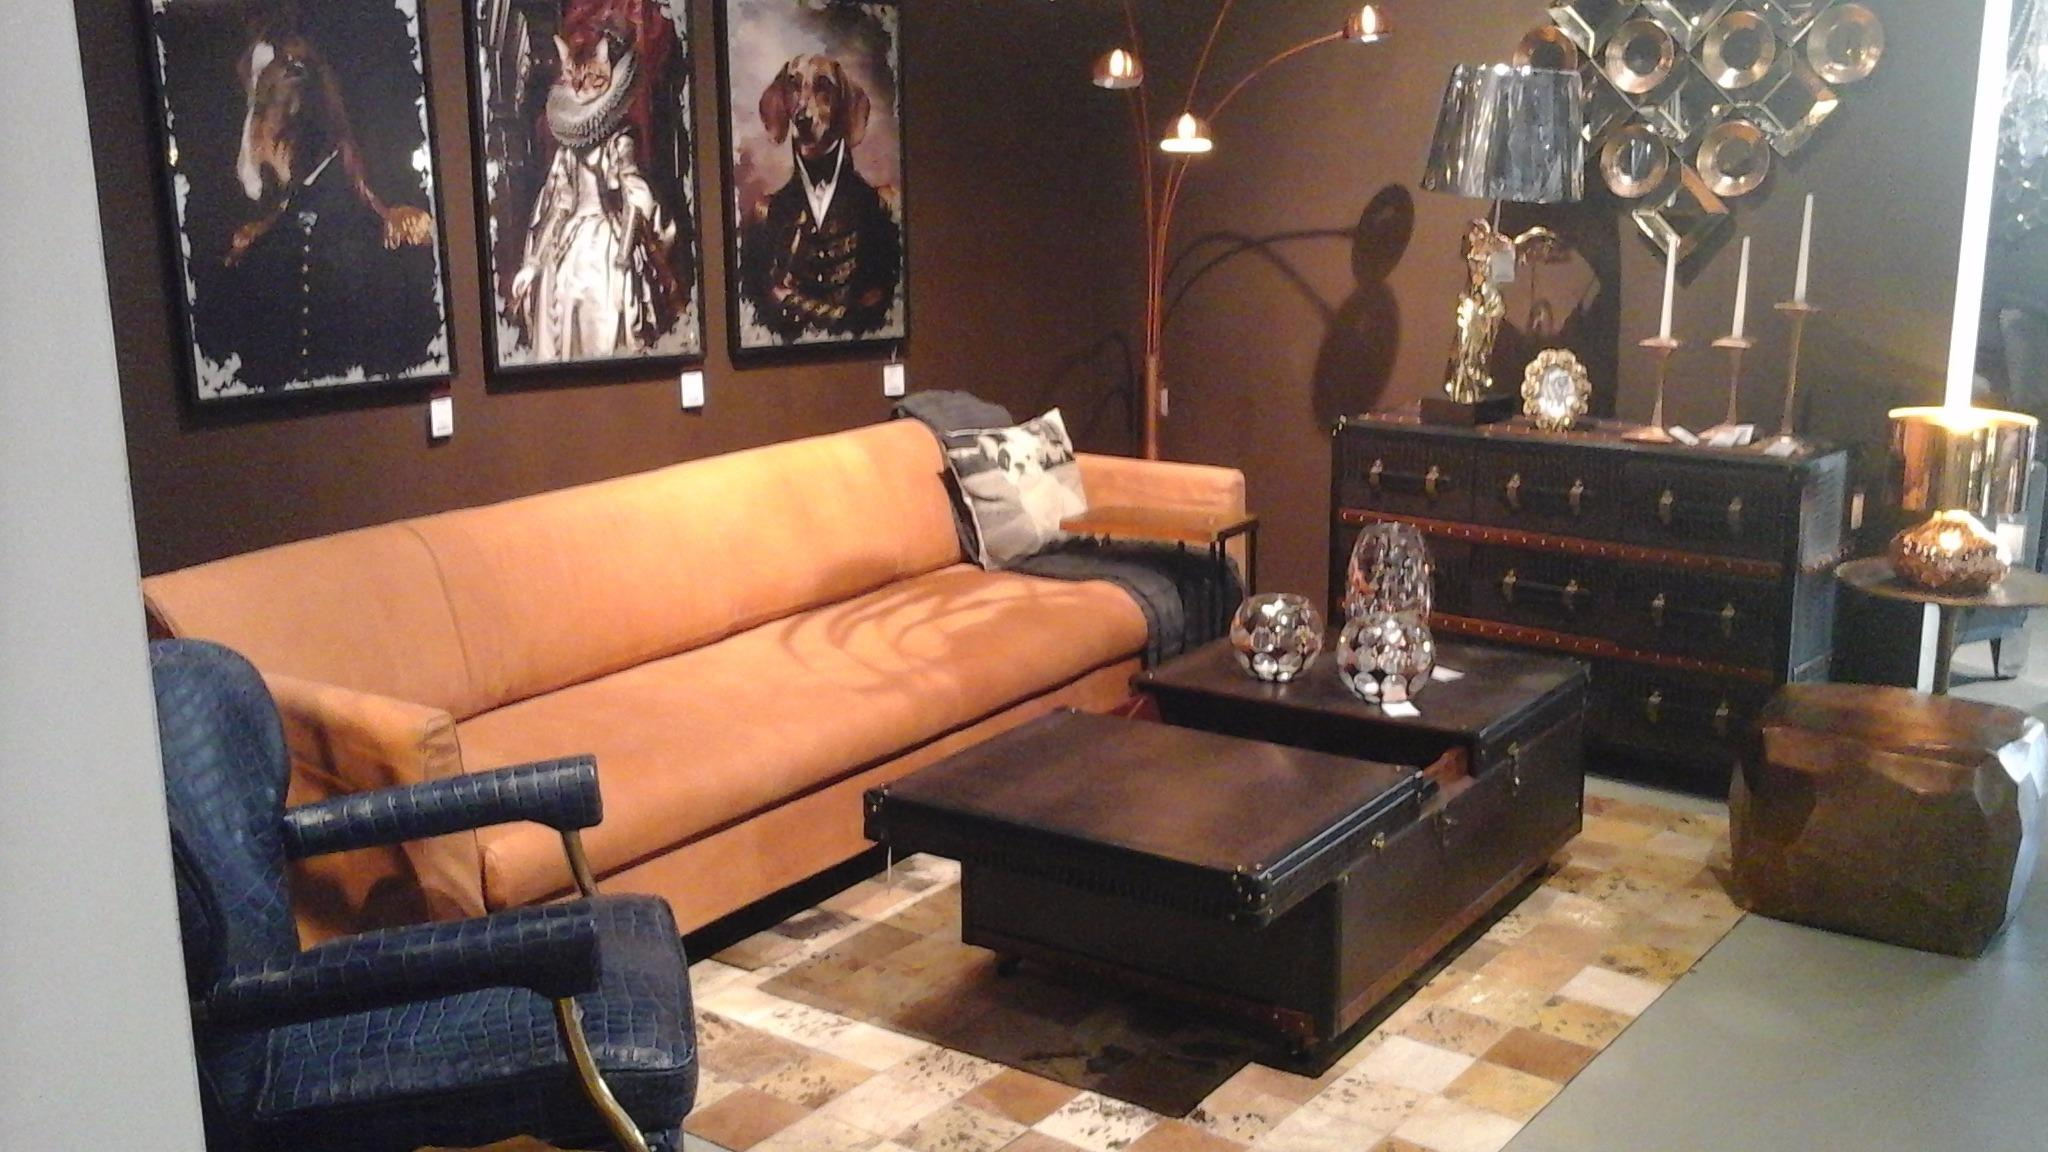 Home Accessories Furnishings In Miami Fl Miami Florida Home Accessories Furnishings Ibegin